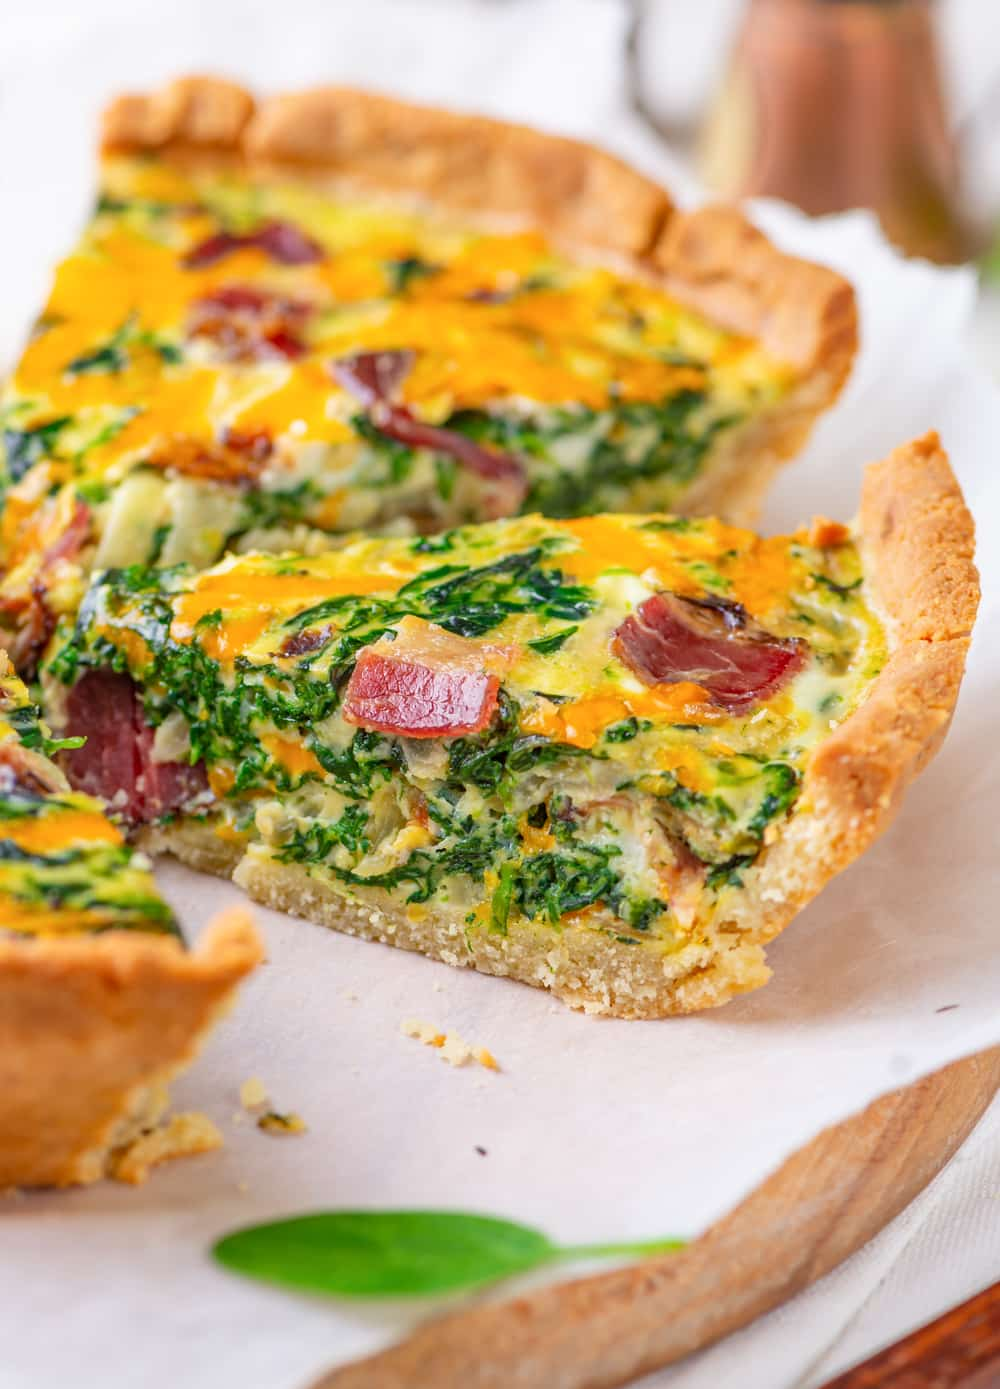 Keto Quiche Recipe The Best Low Carb Easy To Make Spinach Quiche For Keto